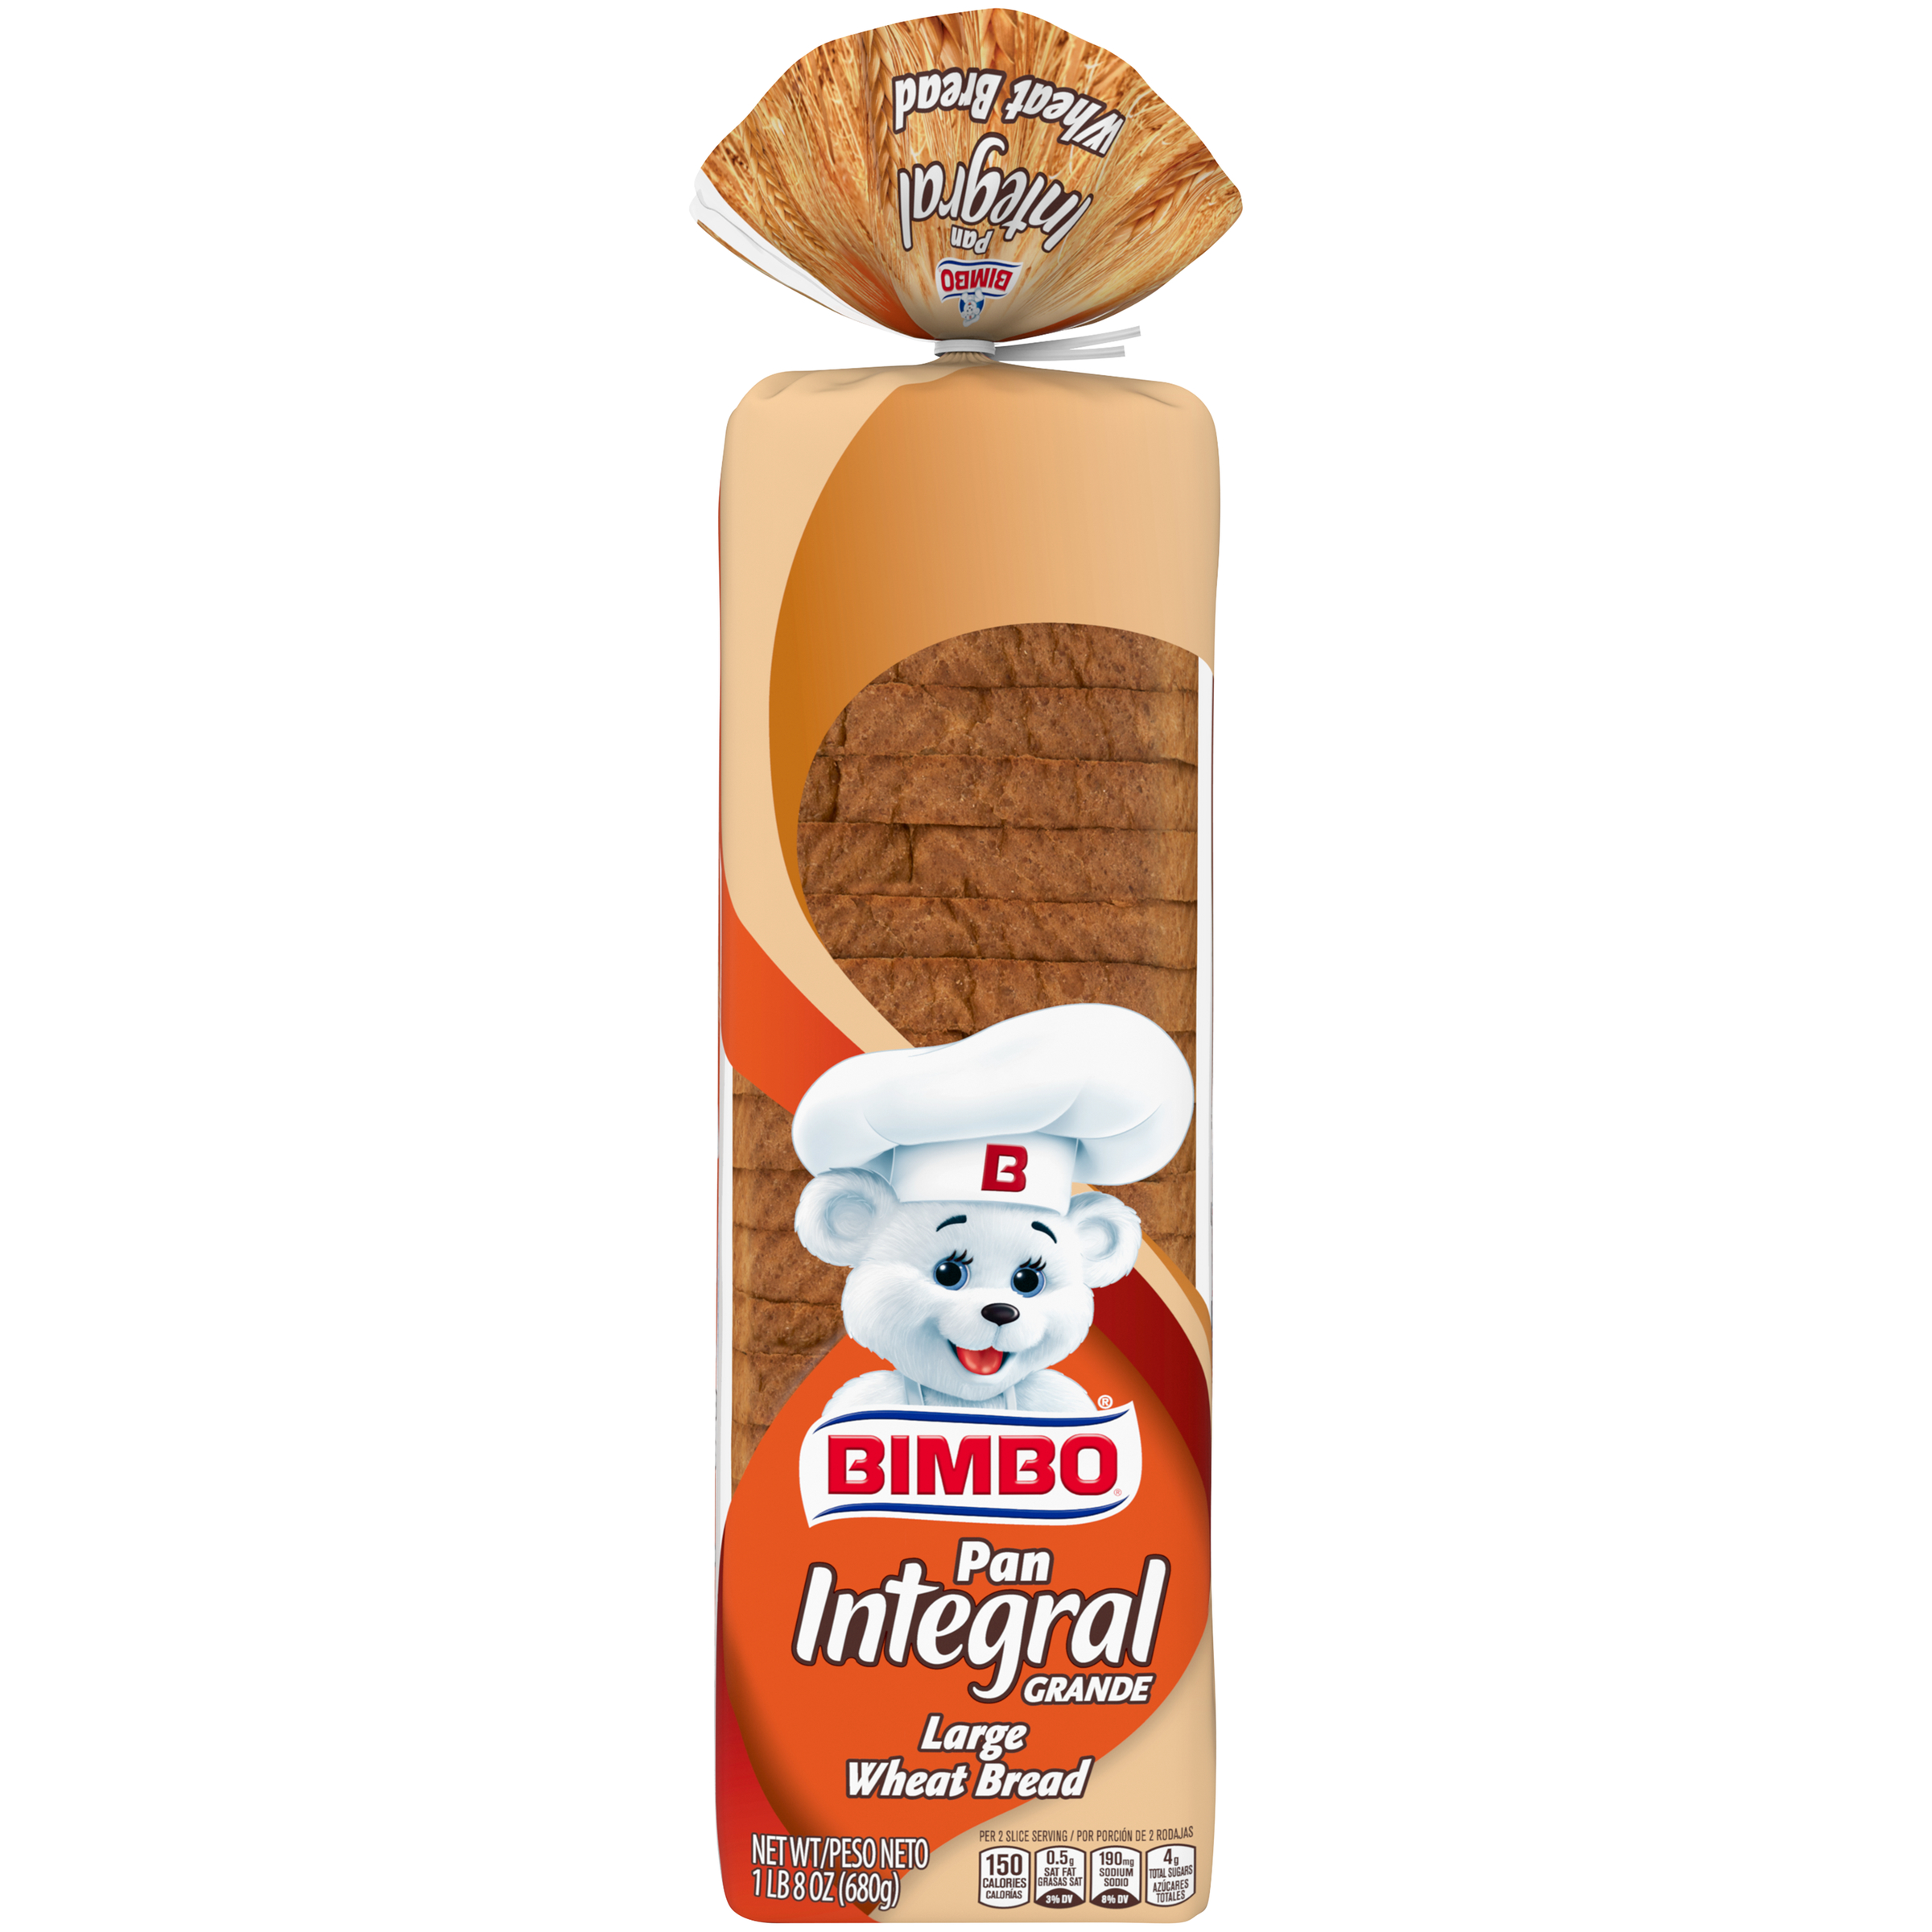 Bimbo Pan Integral Grande Large Wheat Bread, 24 oz